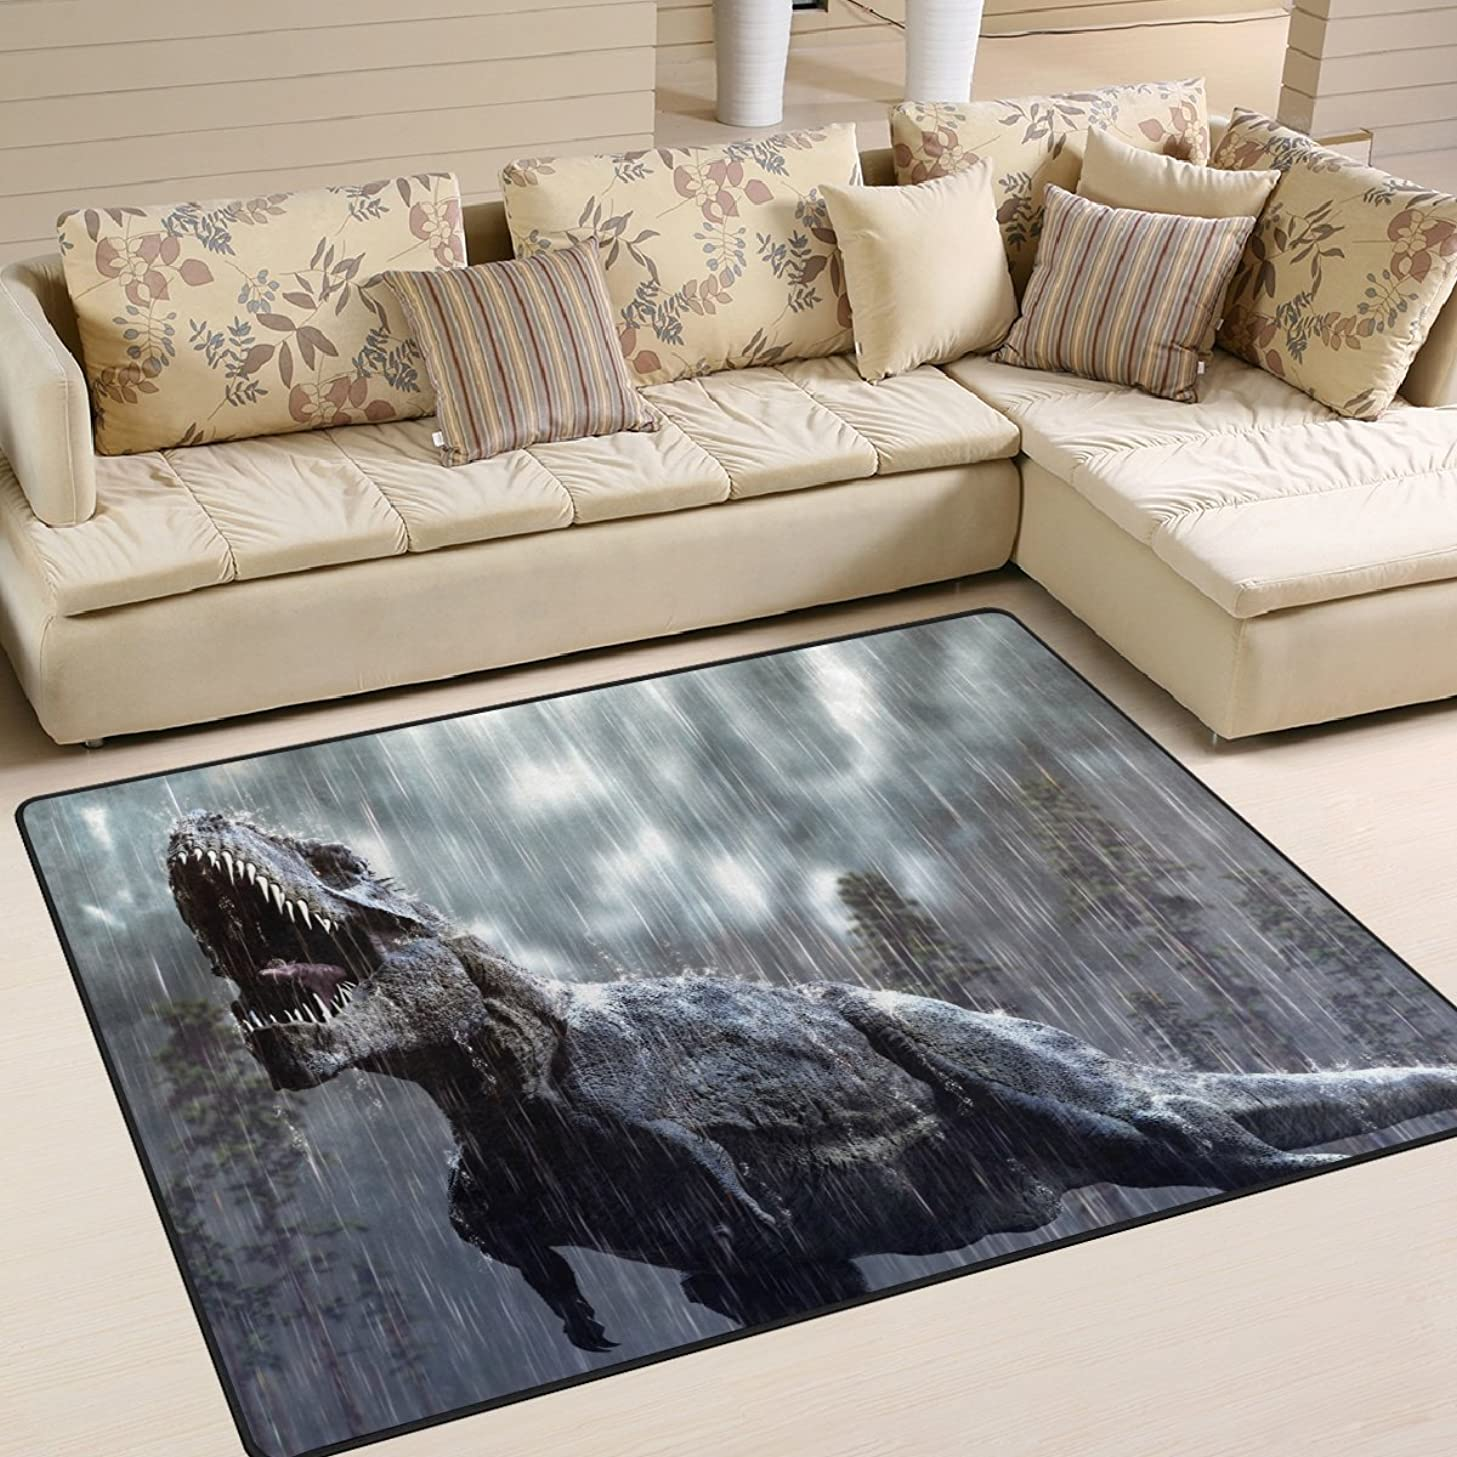 ALAZA Rainy Dinosaur Area Rug Rugs for Living Room Bedroom 7' x 5'